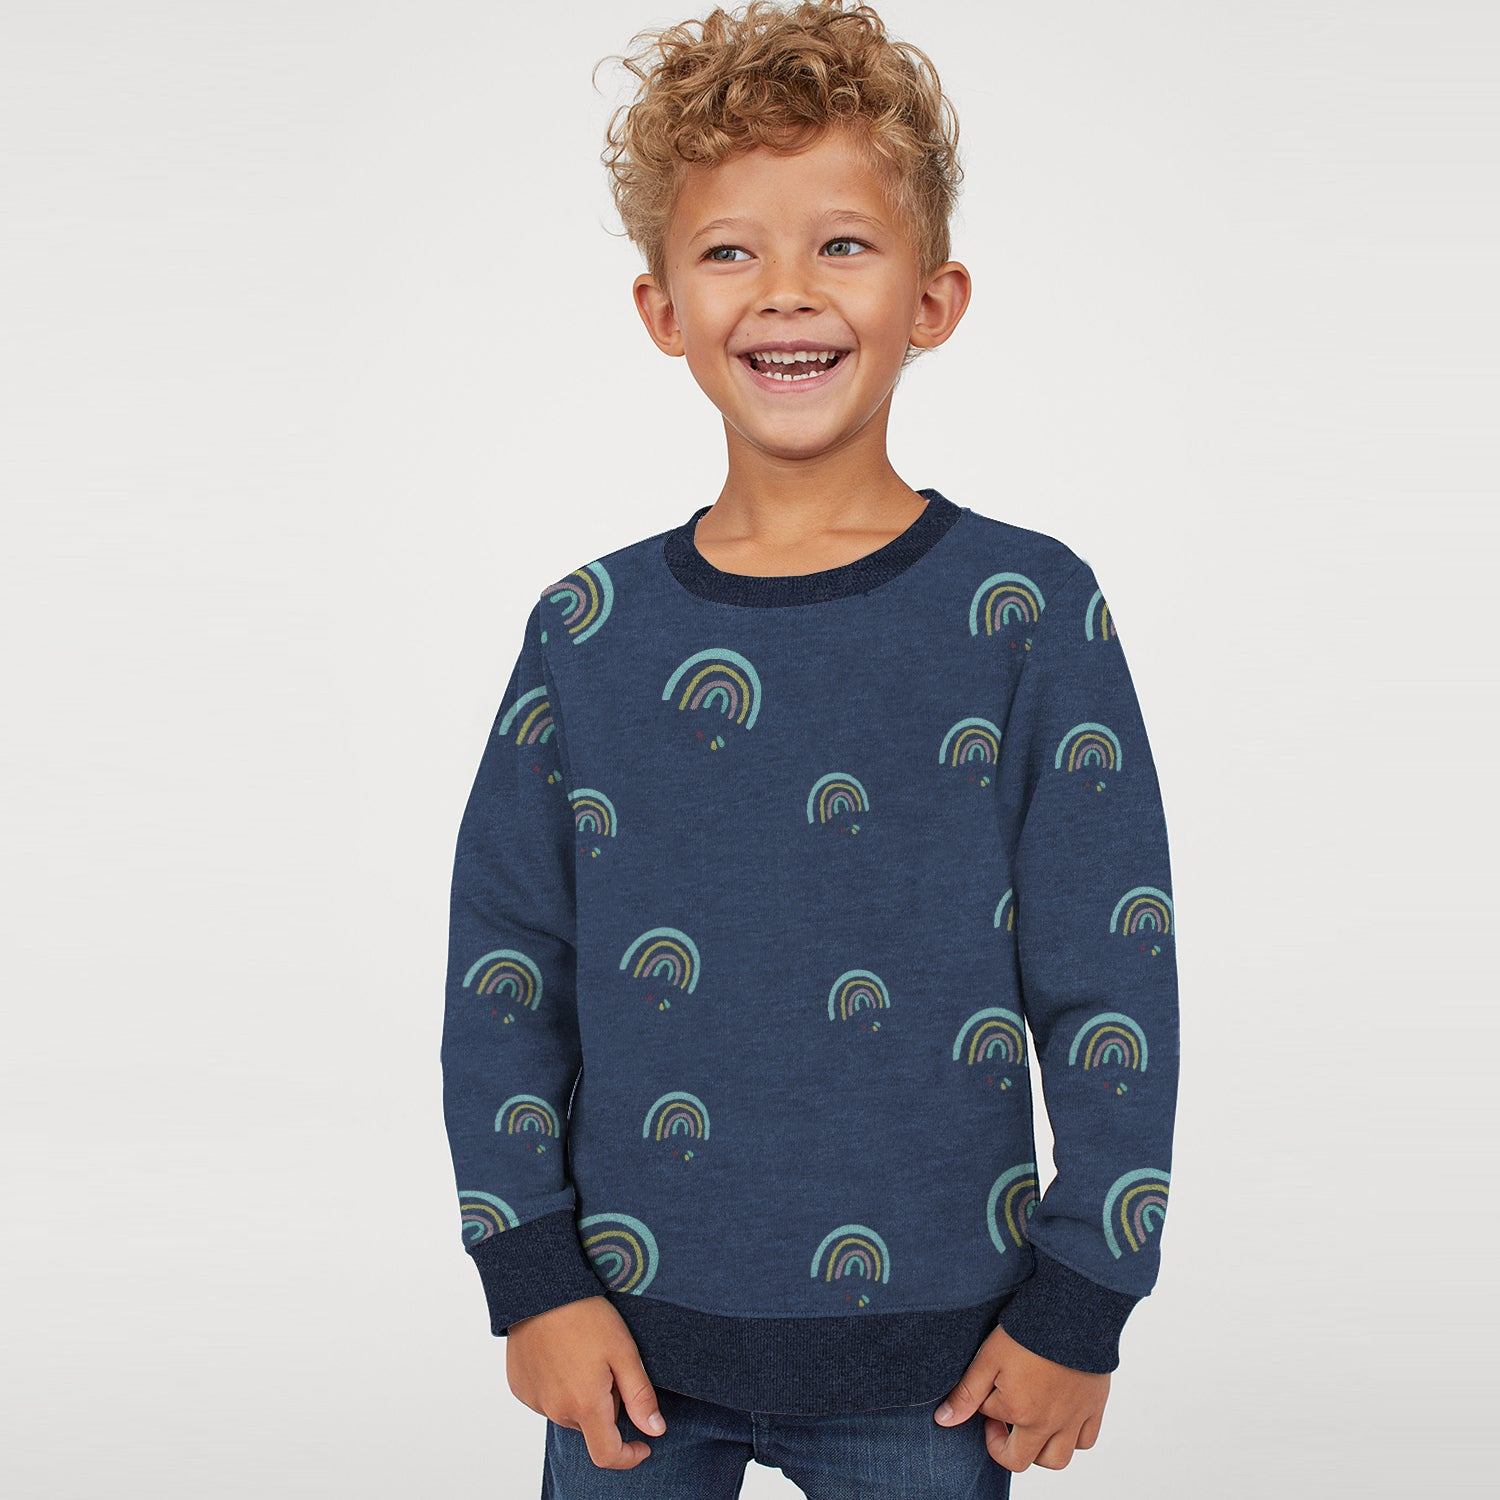 Tommy Hilfiger Fleece Crew Neck Sweatshirt For Kids-Navy Melange with Print-BE10709